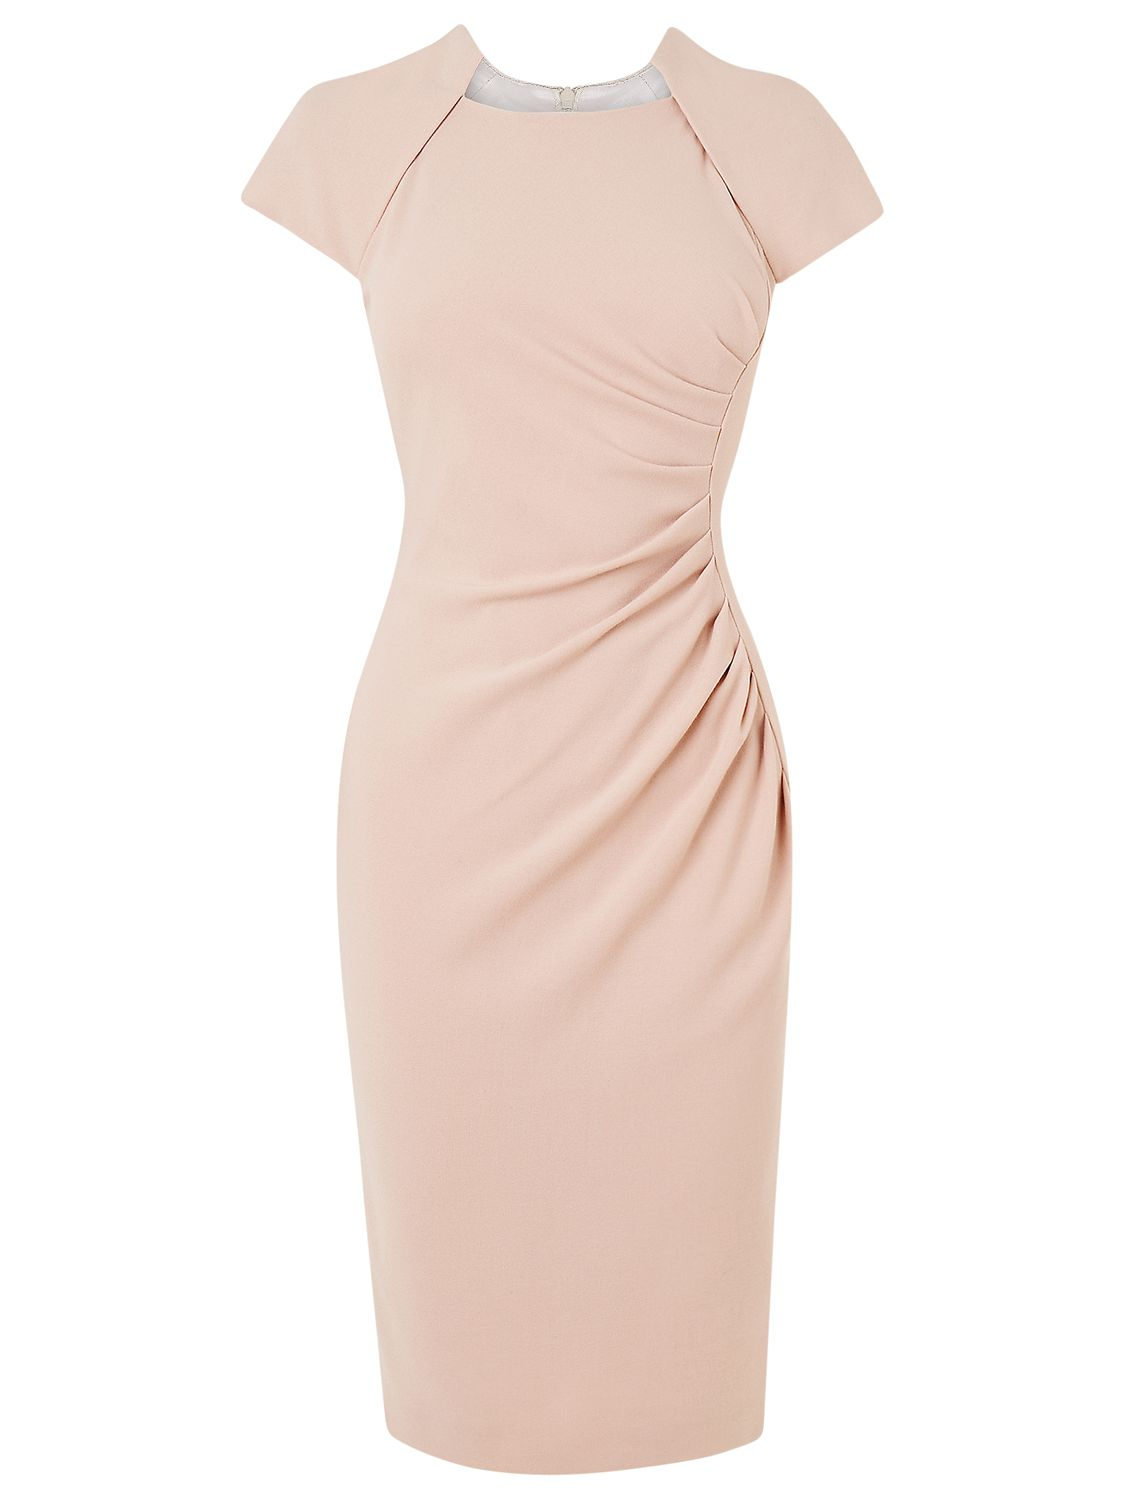 L.K. Bennett Marina Dress, Natural Barley